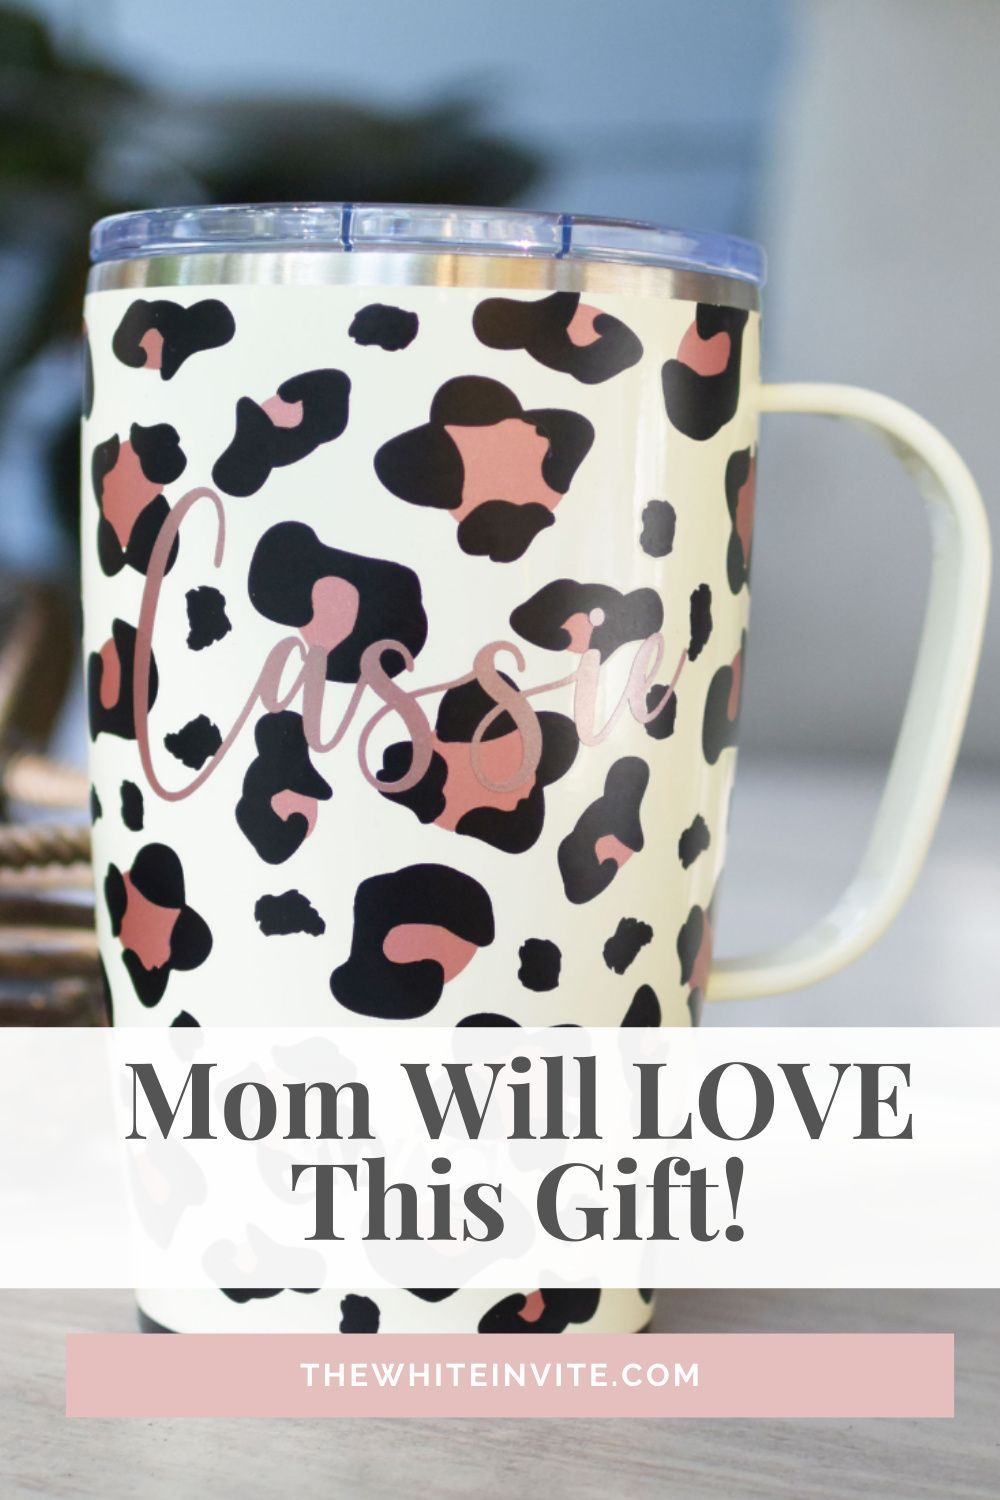 Swig Coffee Mug Personalized Stainless Steel Insulated Coffee Etsy Custom Coffee Cups Gifts In A Mug Teacher Holiday Gifts